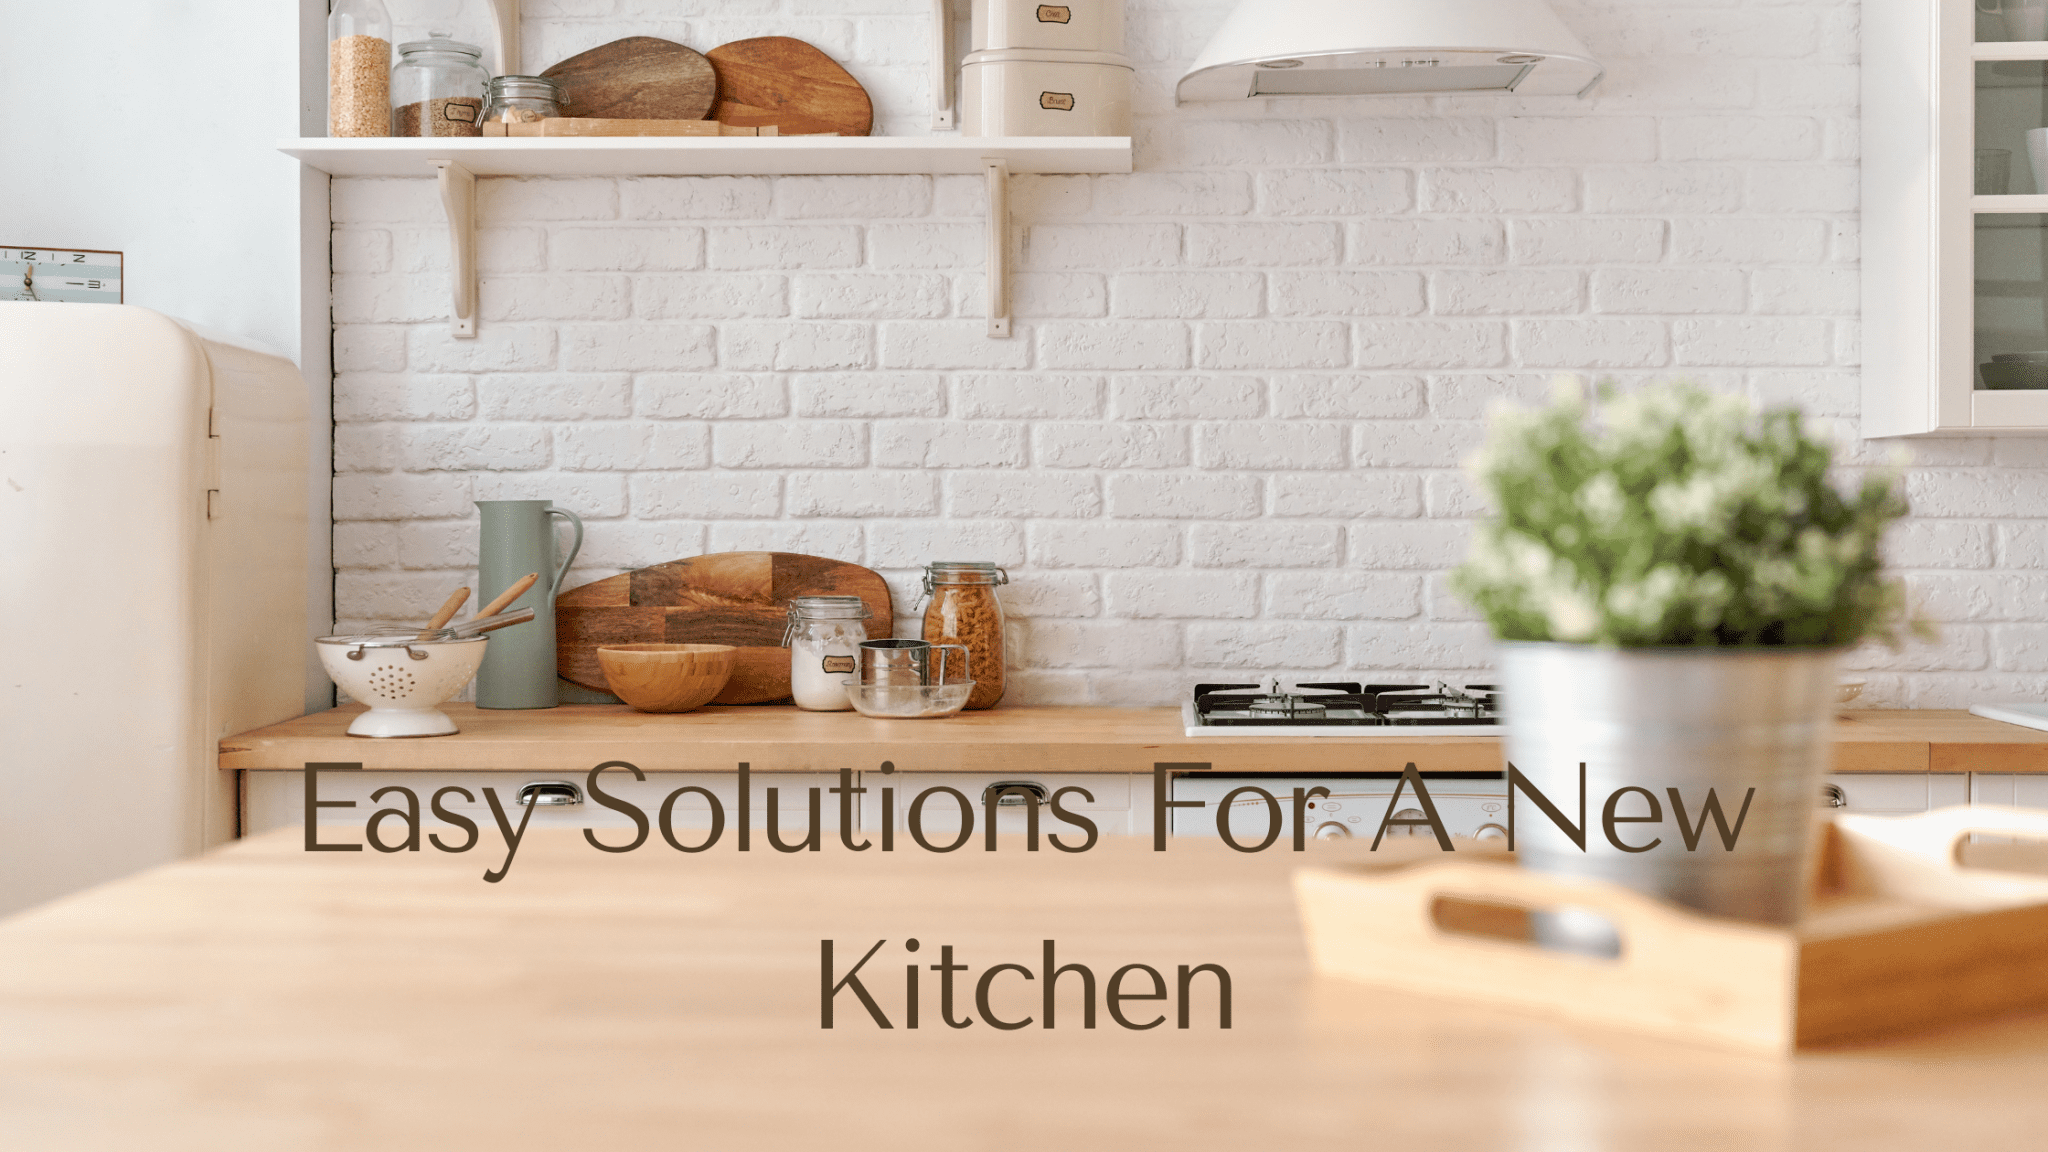 Easy Solutions For A New Kitchen